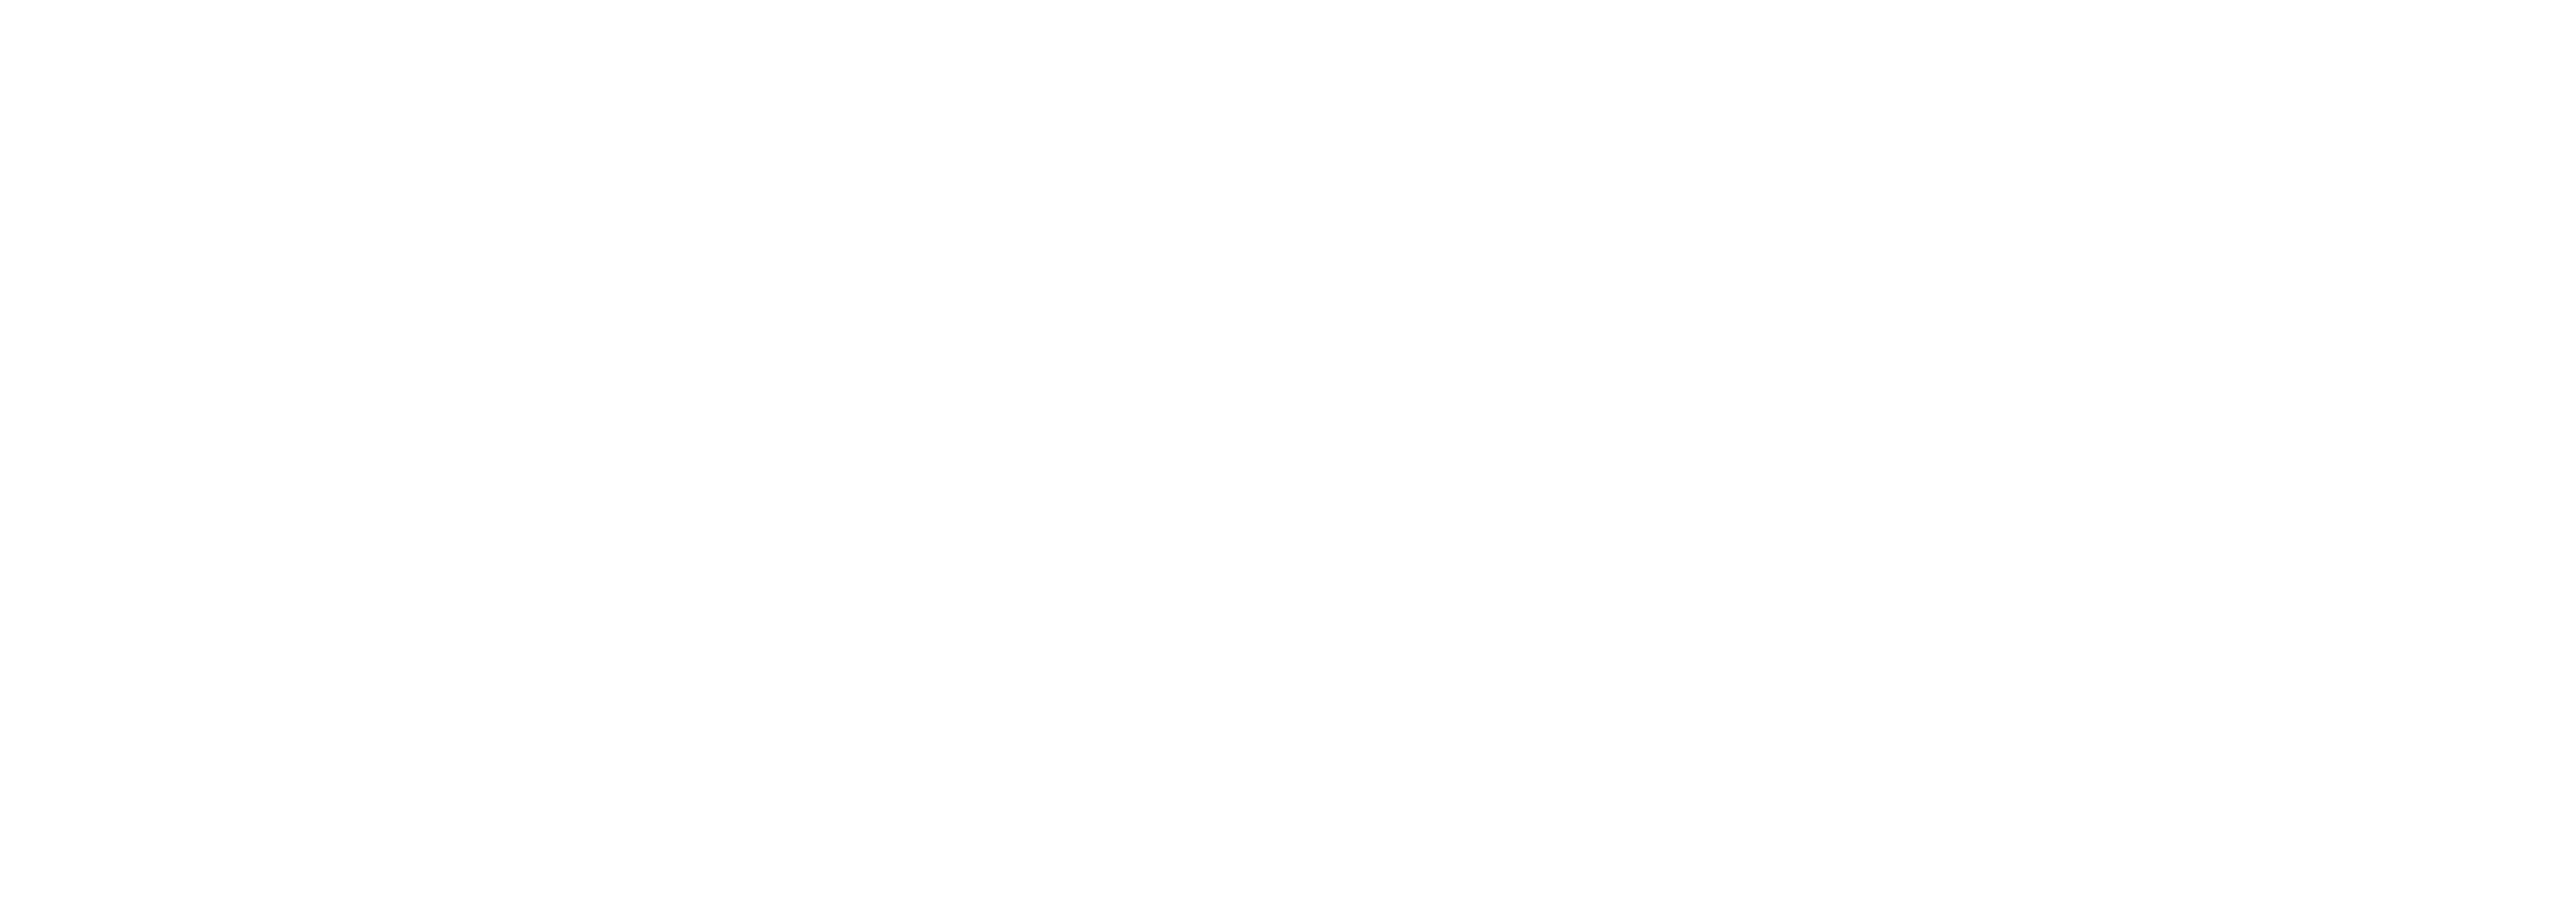 Gerlach's Garden & Floral - Flower Delivery in Erie, PA